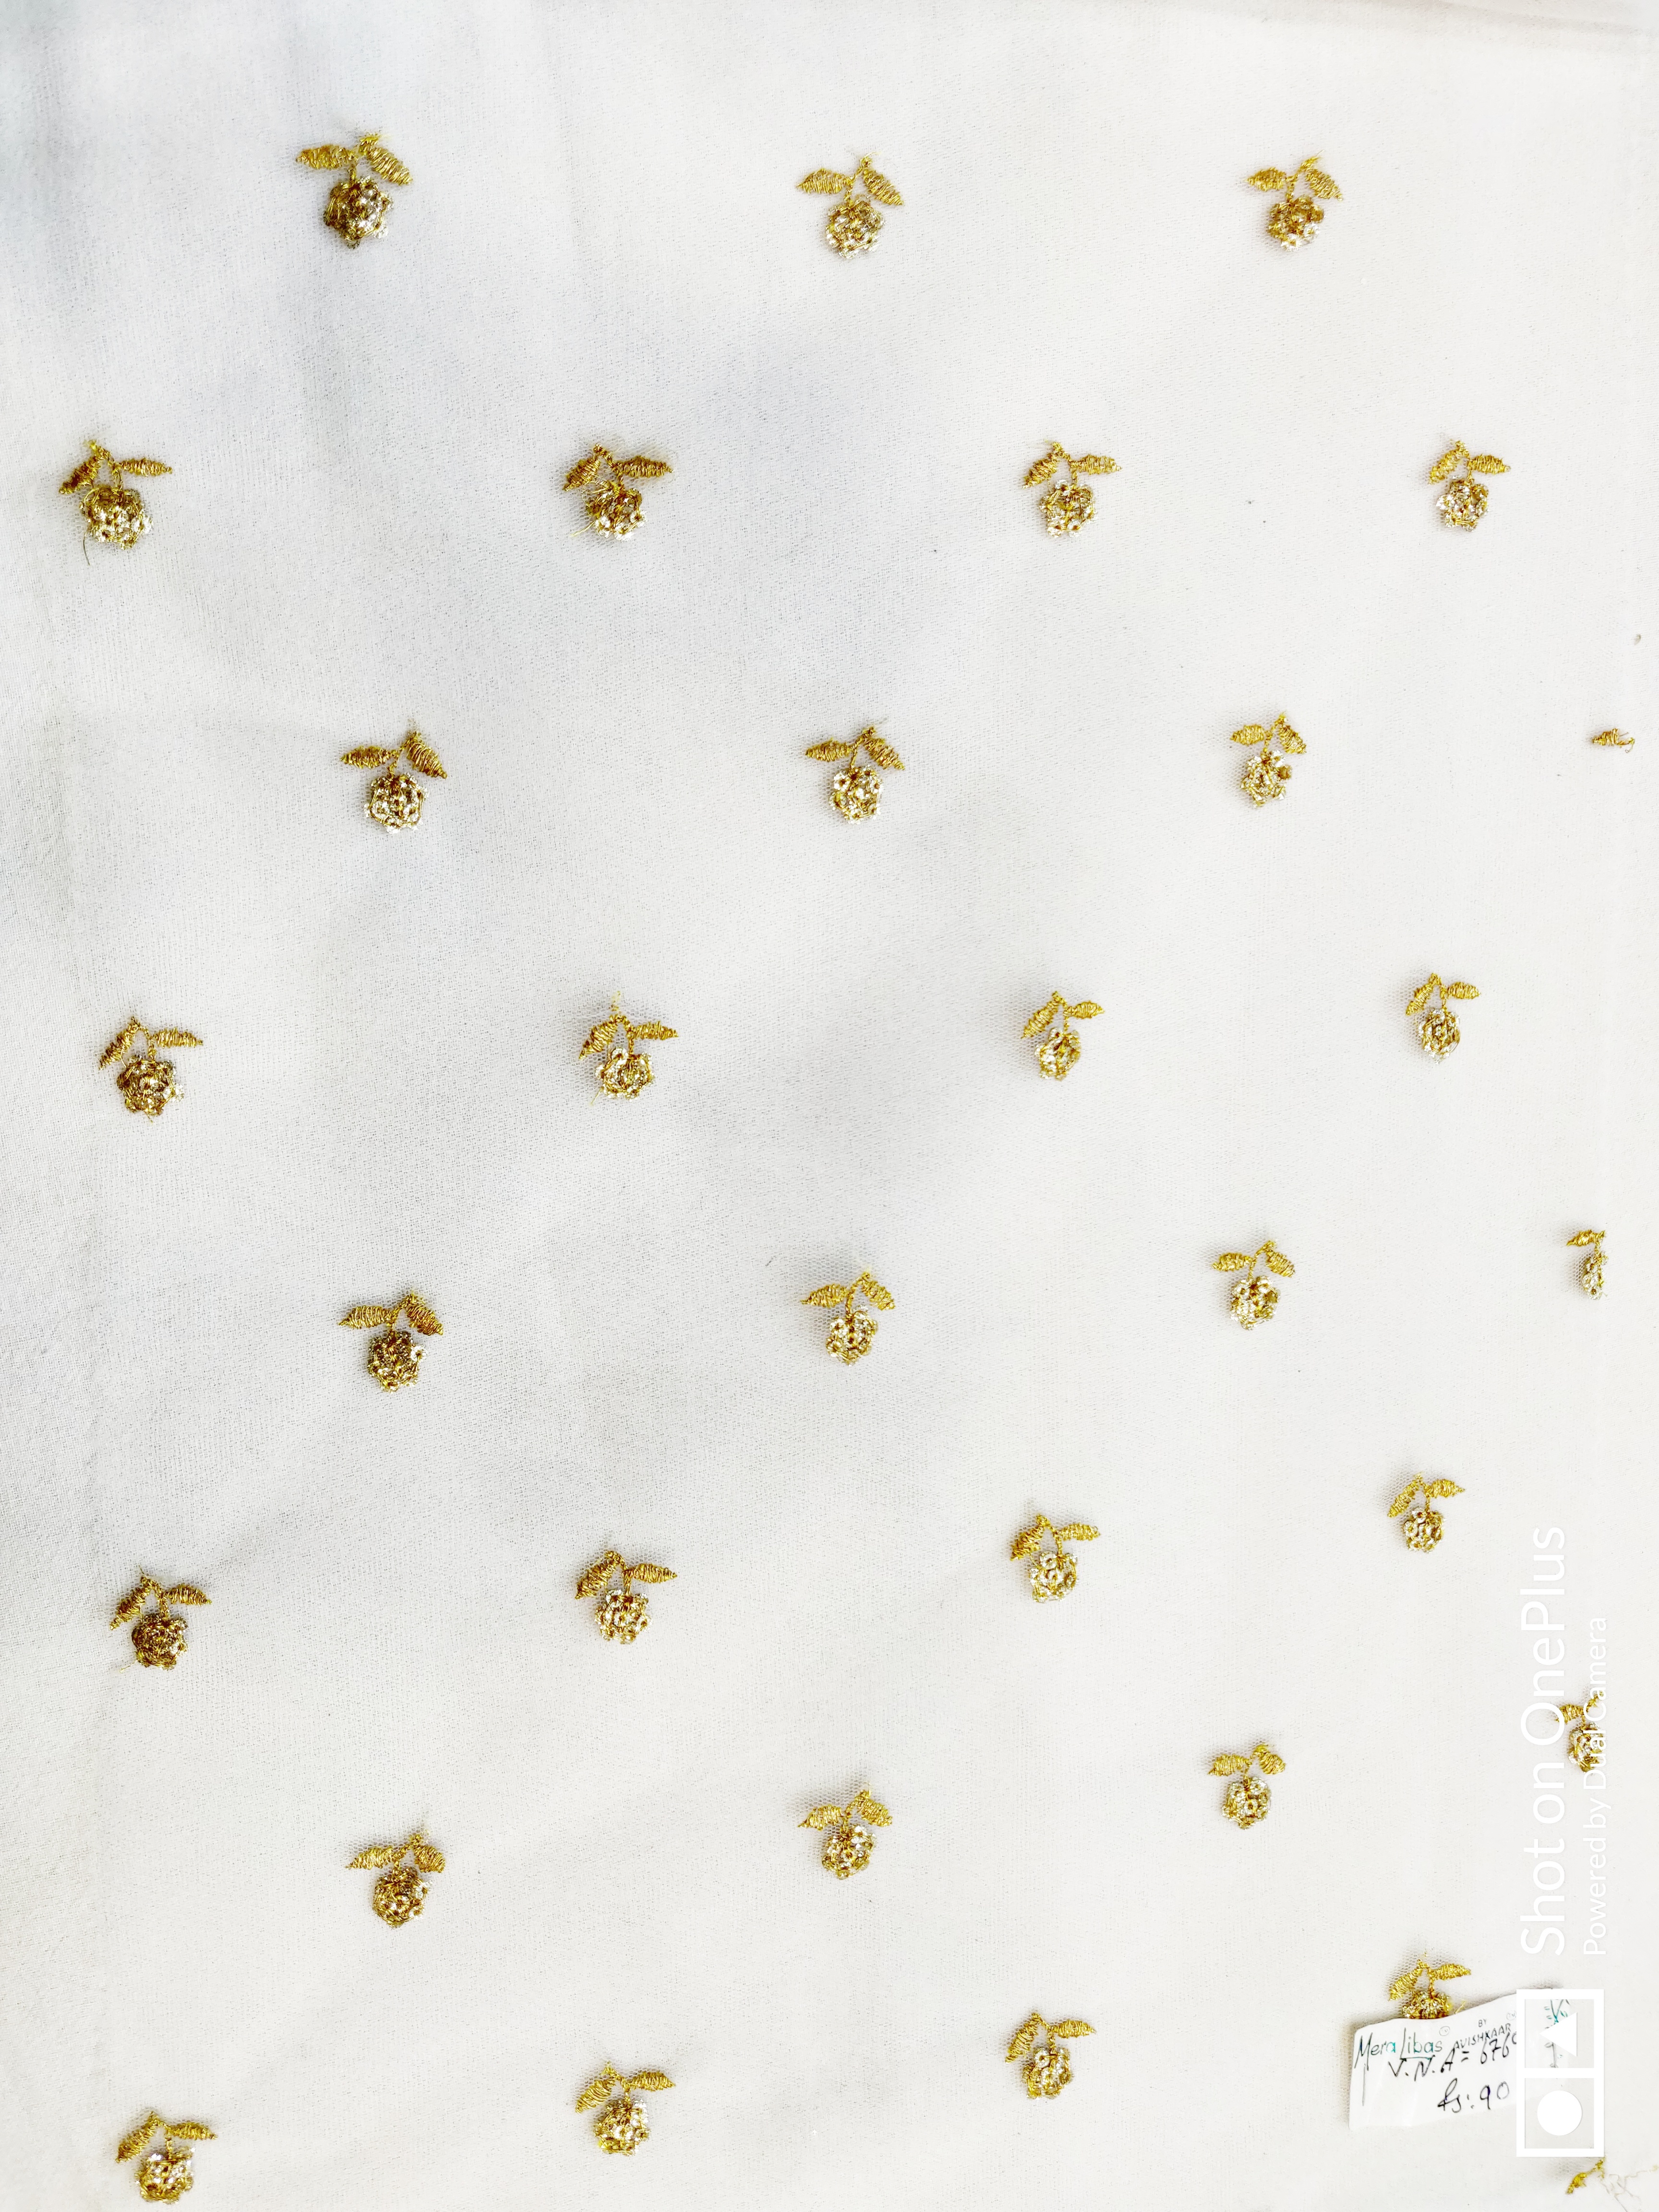 Dyeable viscose butti embroidery